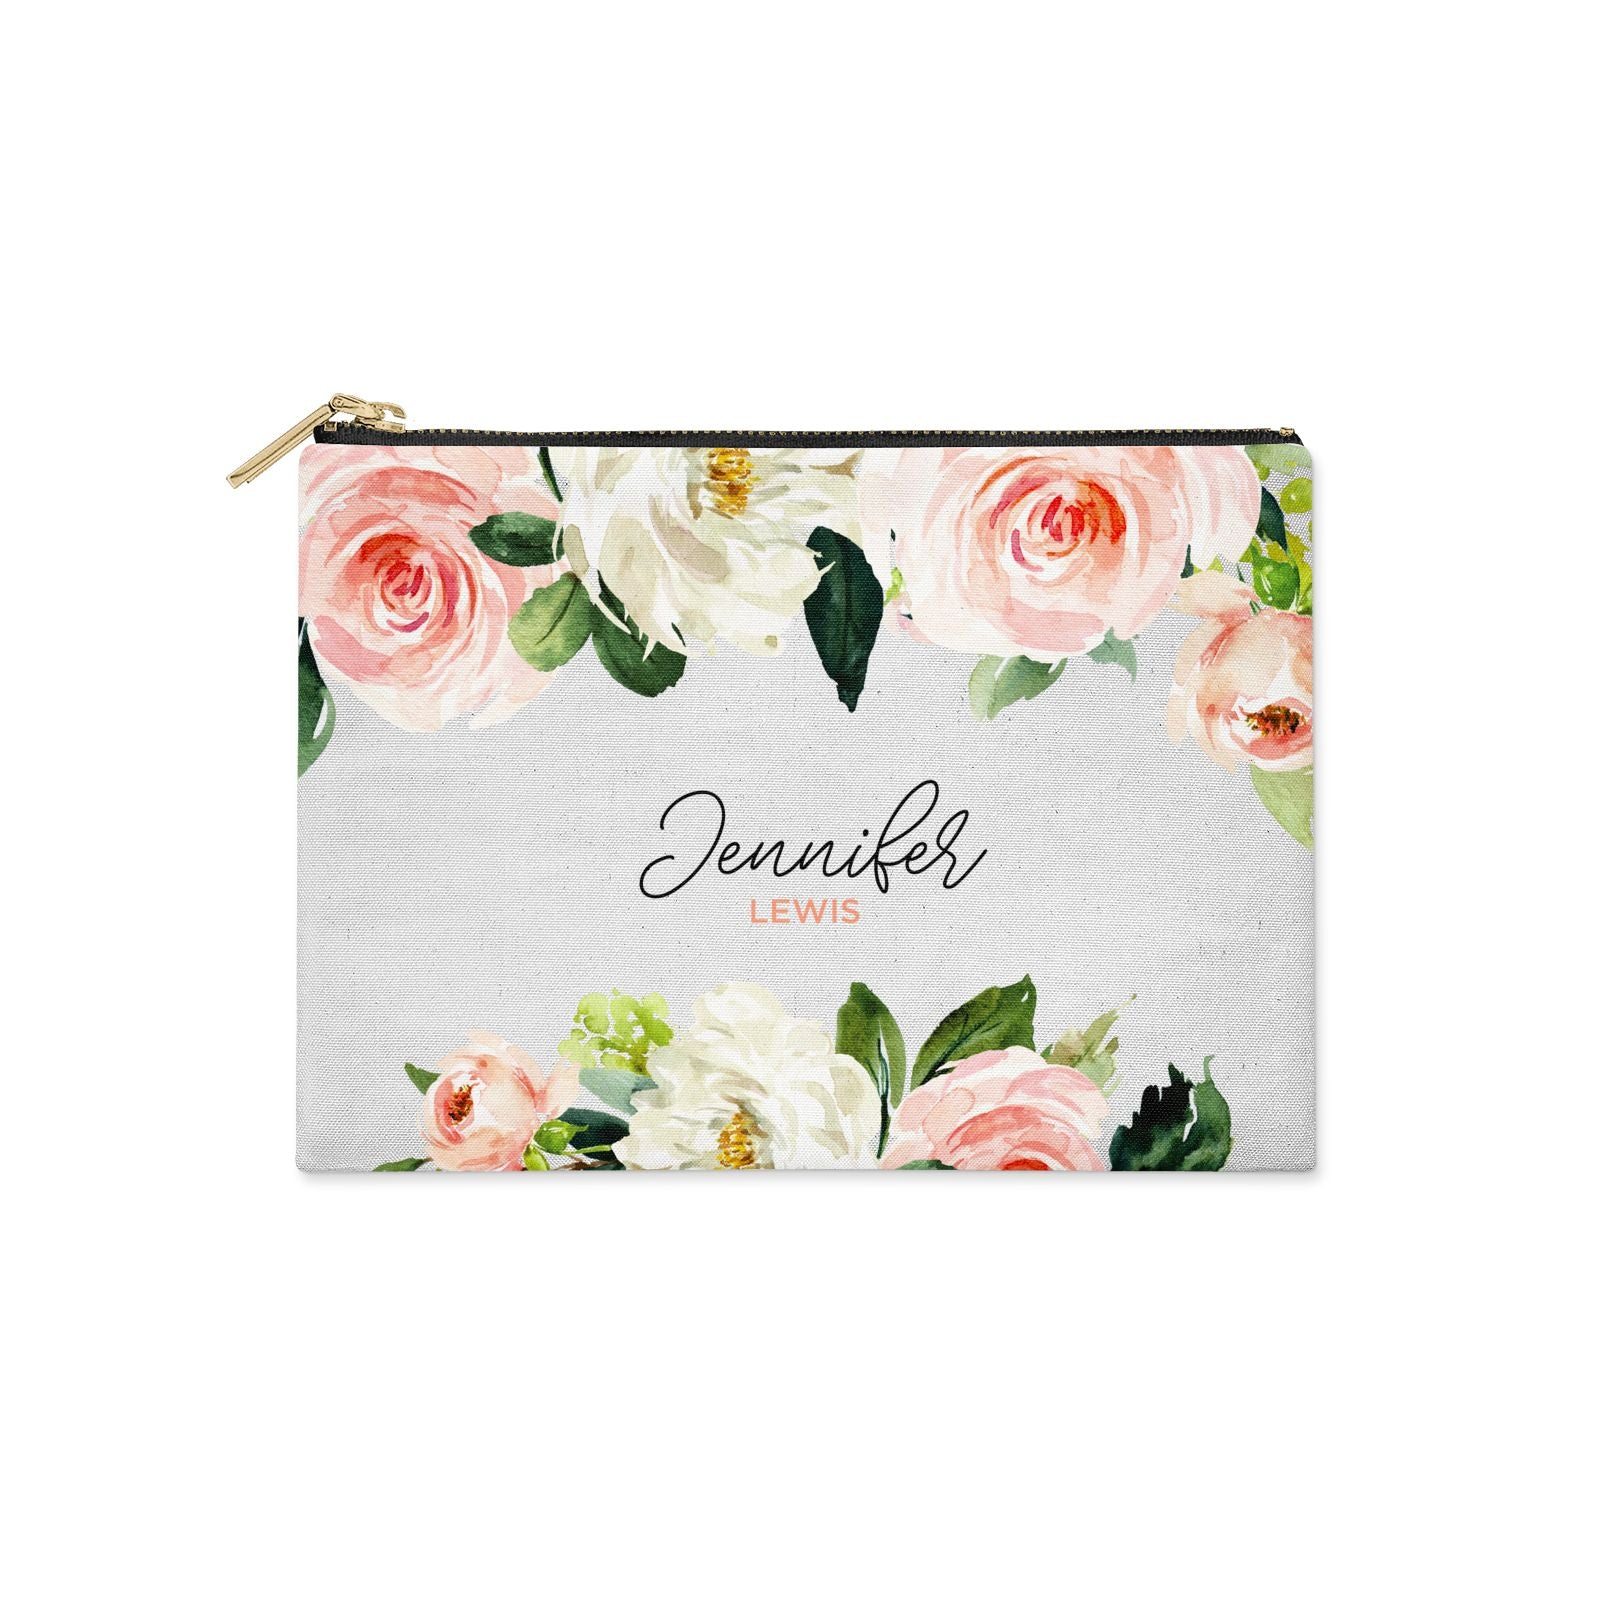 Bunches of Roses Personalised Names Clutch Bag Zipper Pouch